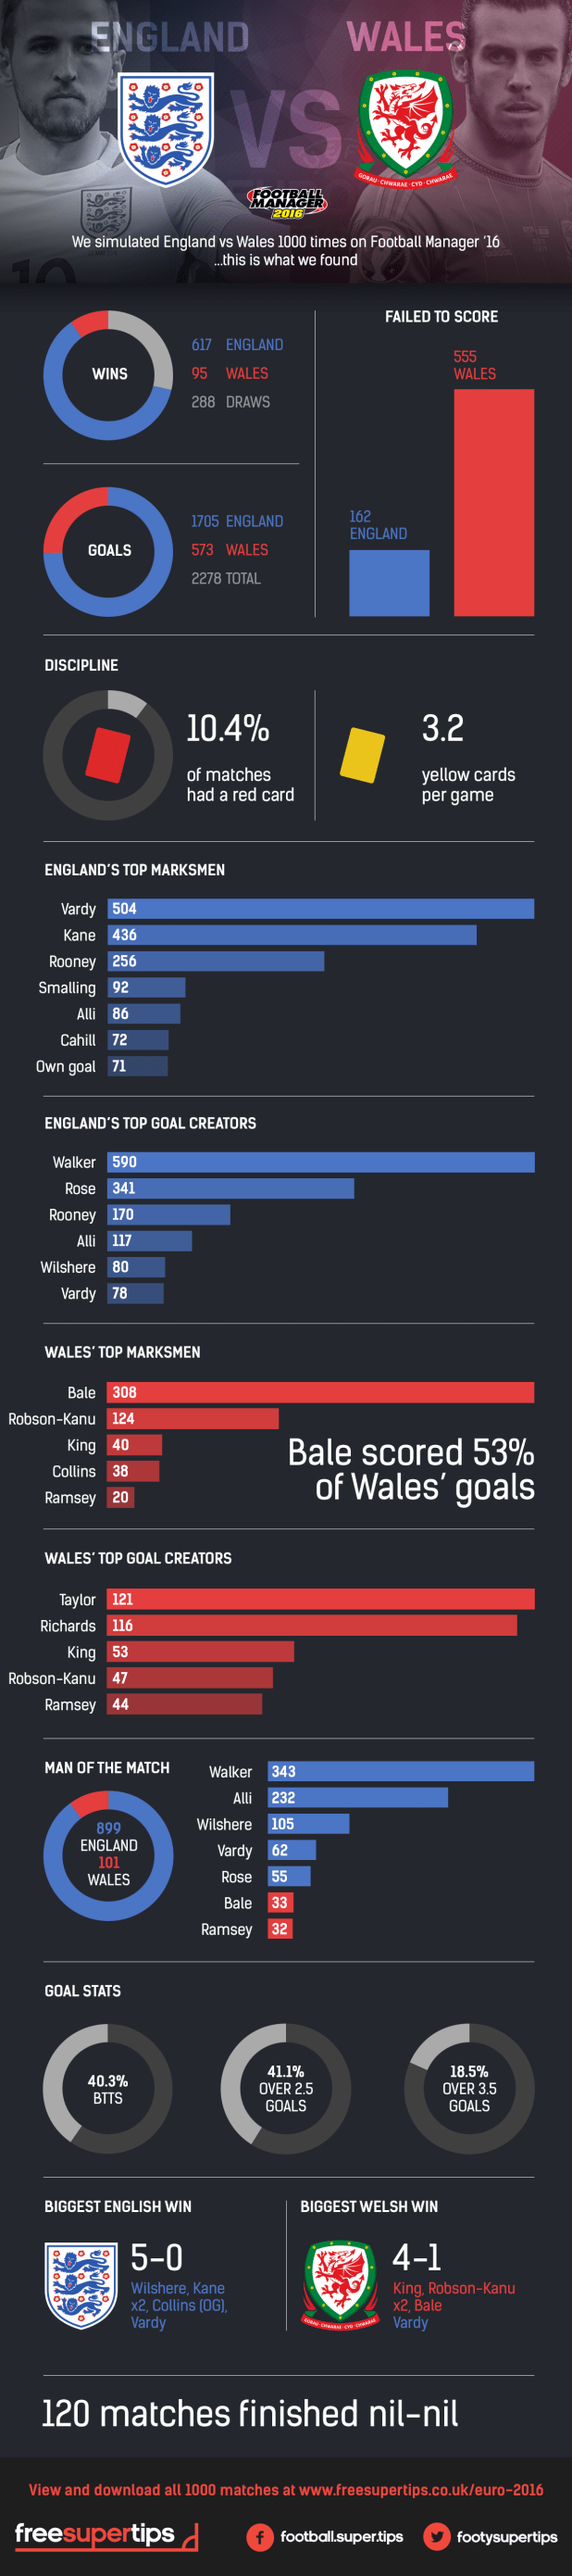 England_Wales_Infographic